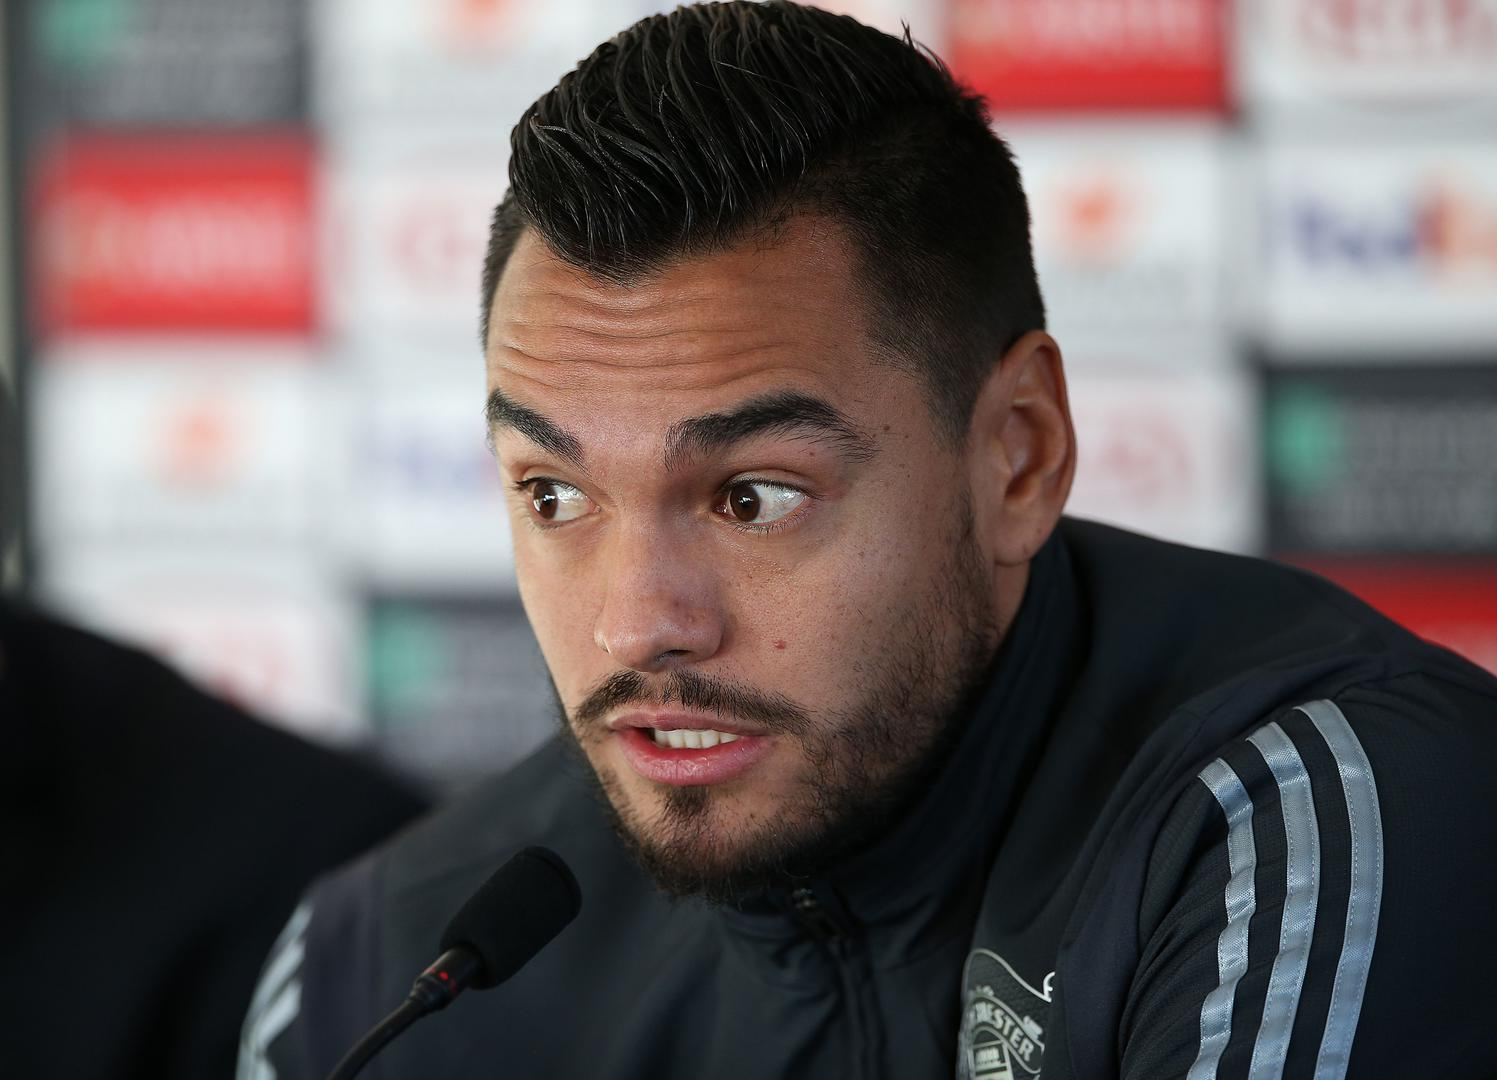 Sergio Romero speaking during a press conference.